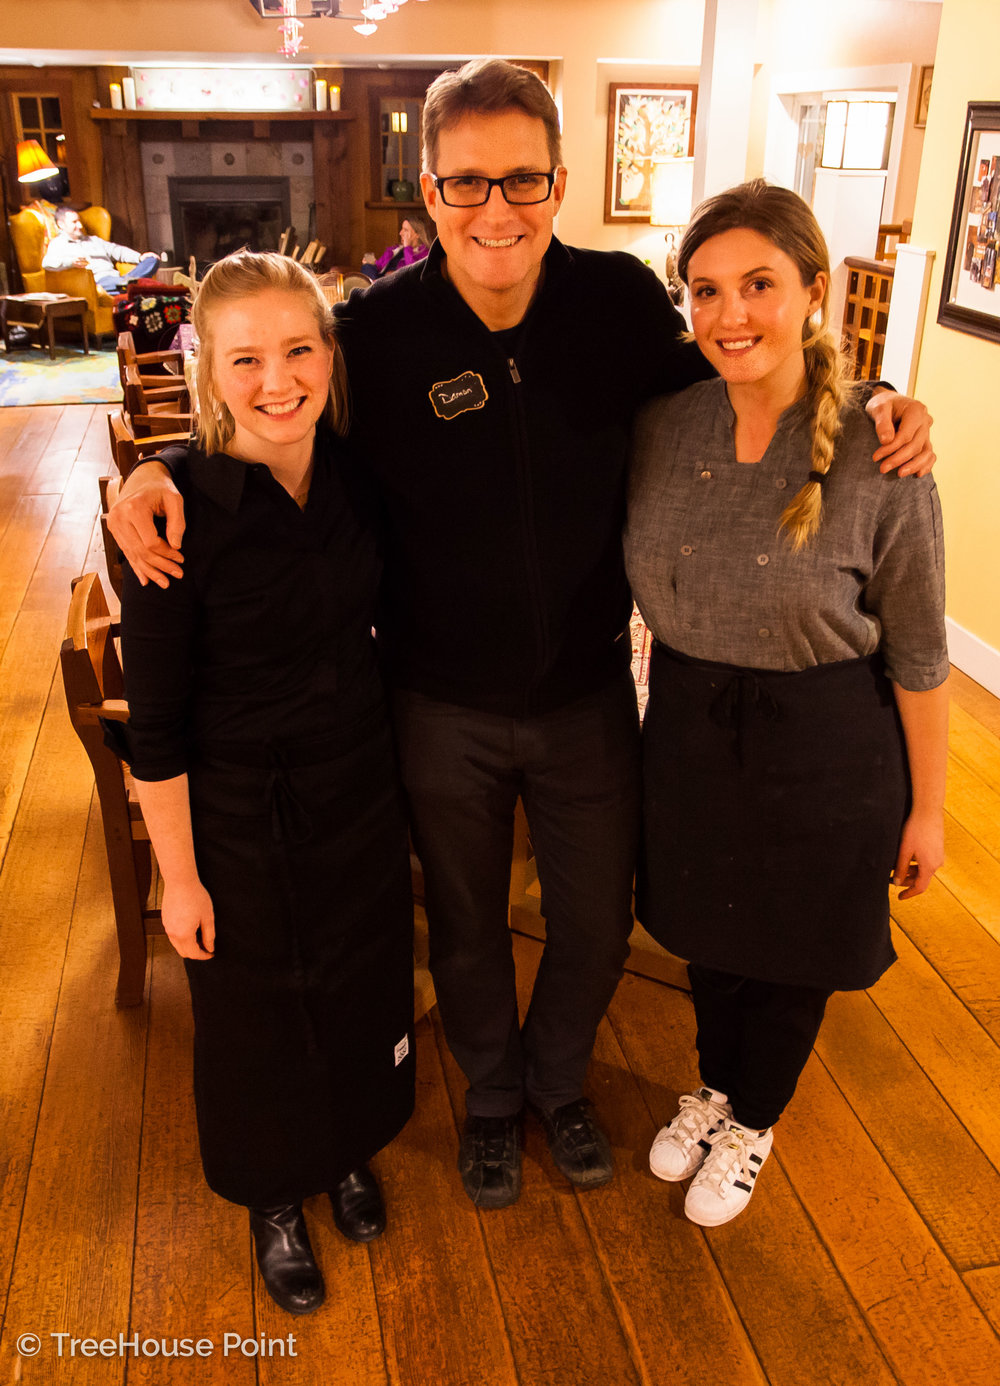 Pictured Left to right: Sophia Fischer (founder of Transplant Traveler), Damon Bishop (manager of Treehouse Point), and chef ryan ross.